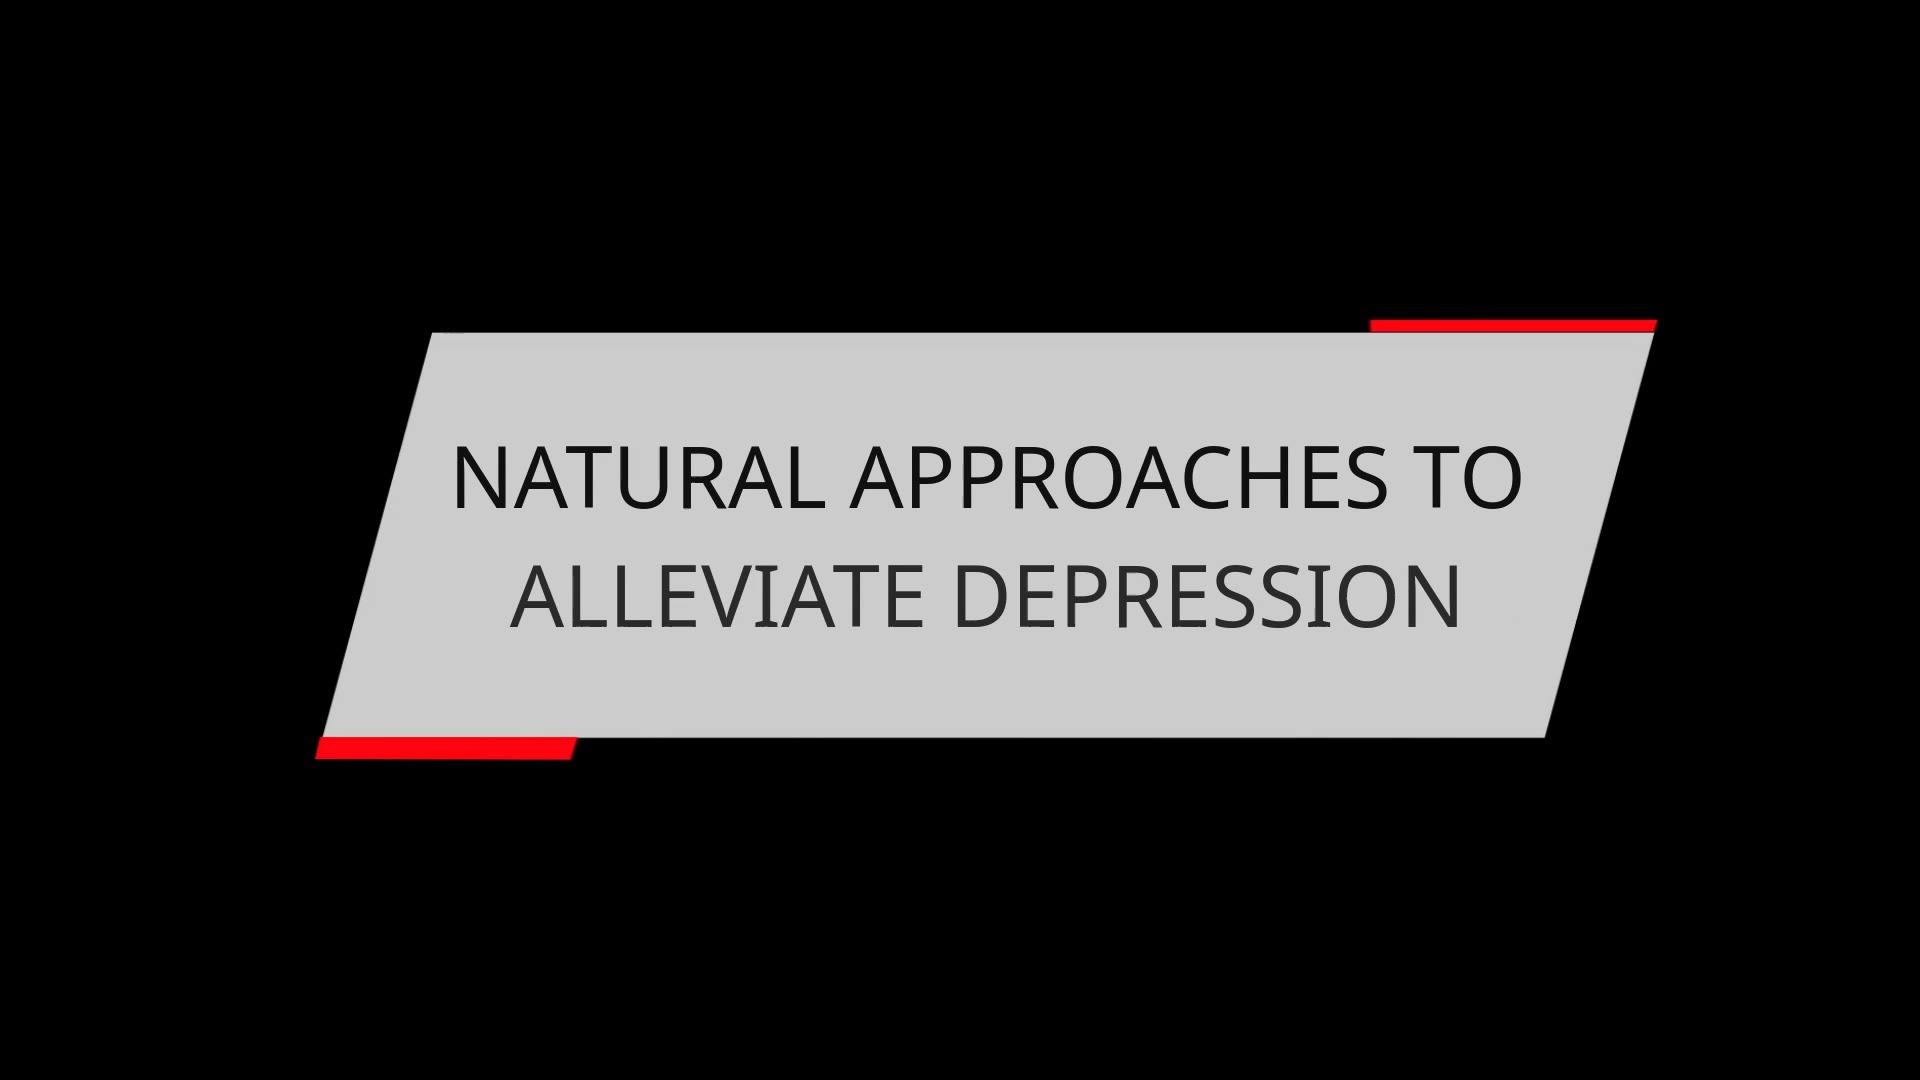 NATURAL APPROACHES TO ALLEVIATE DEPRESSION